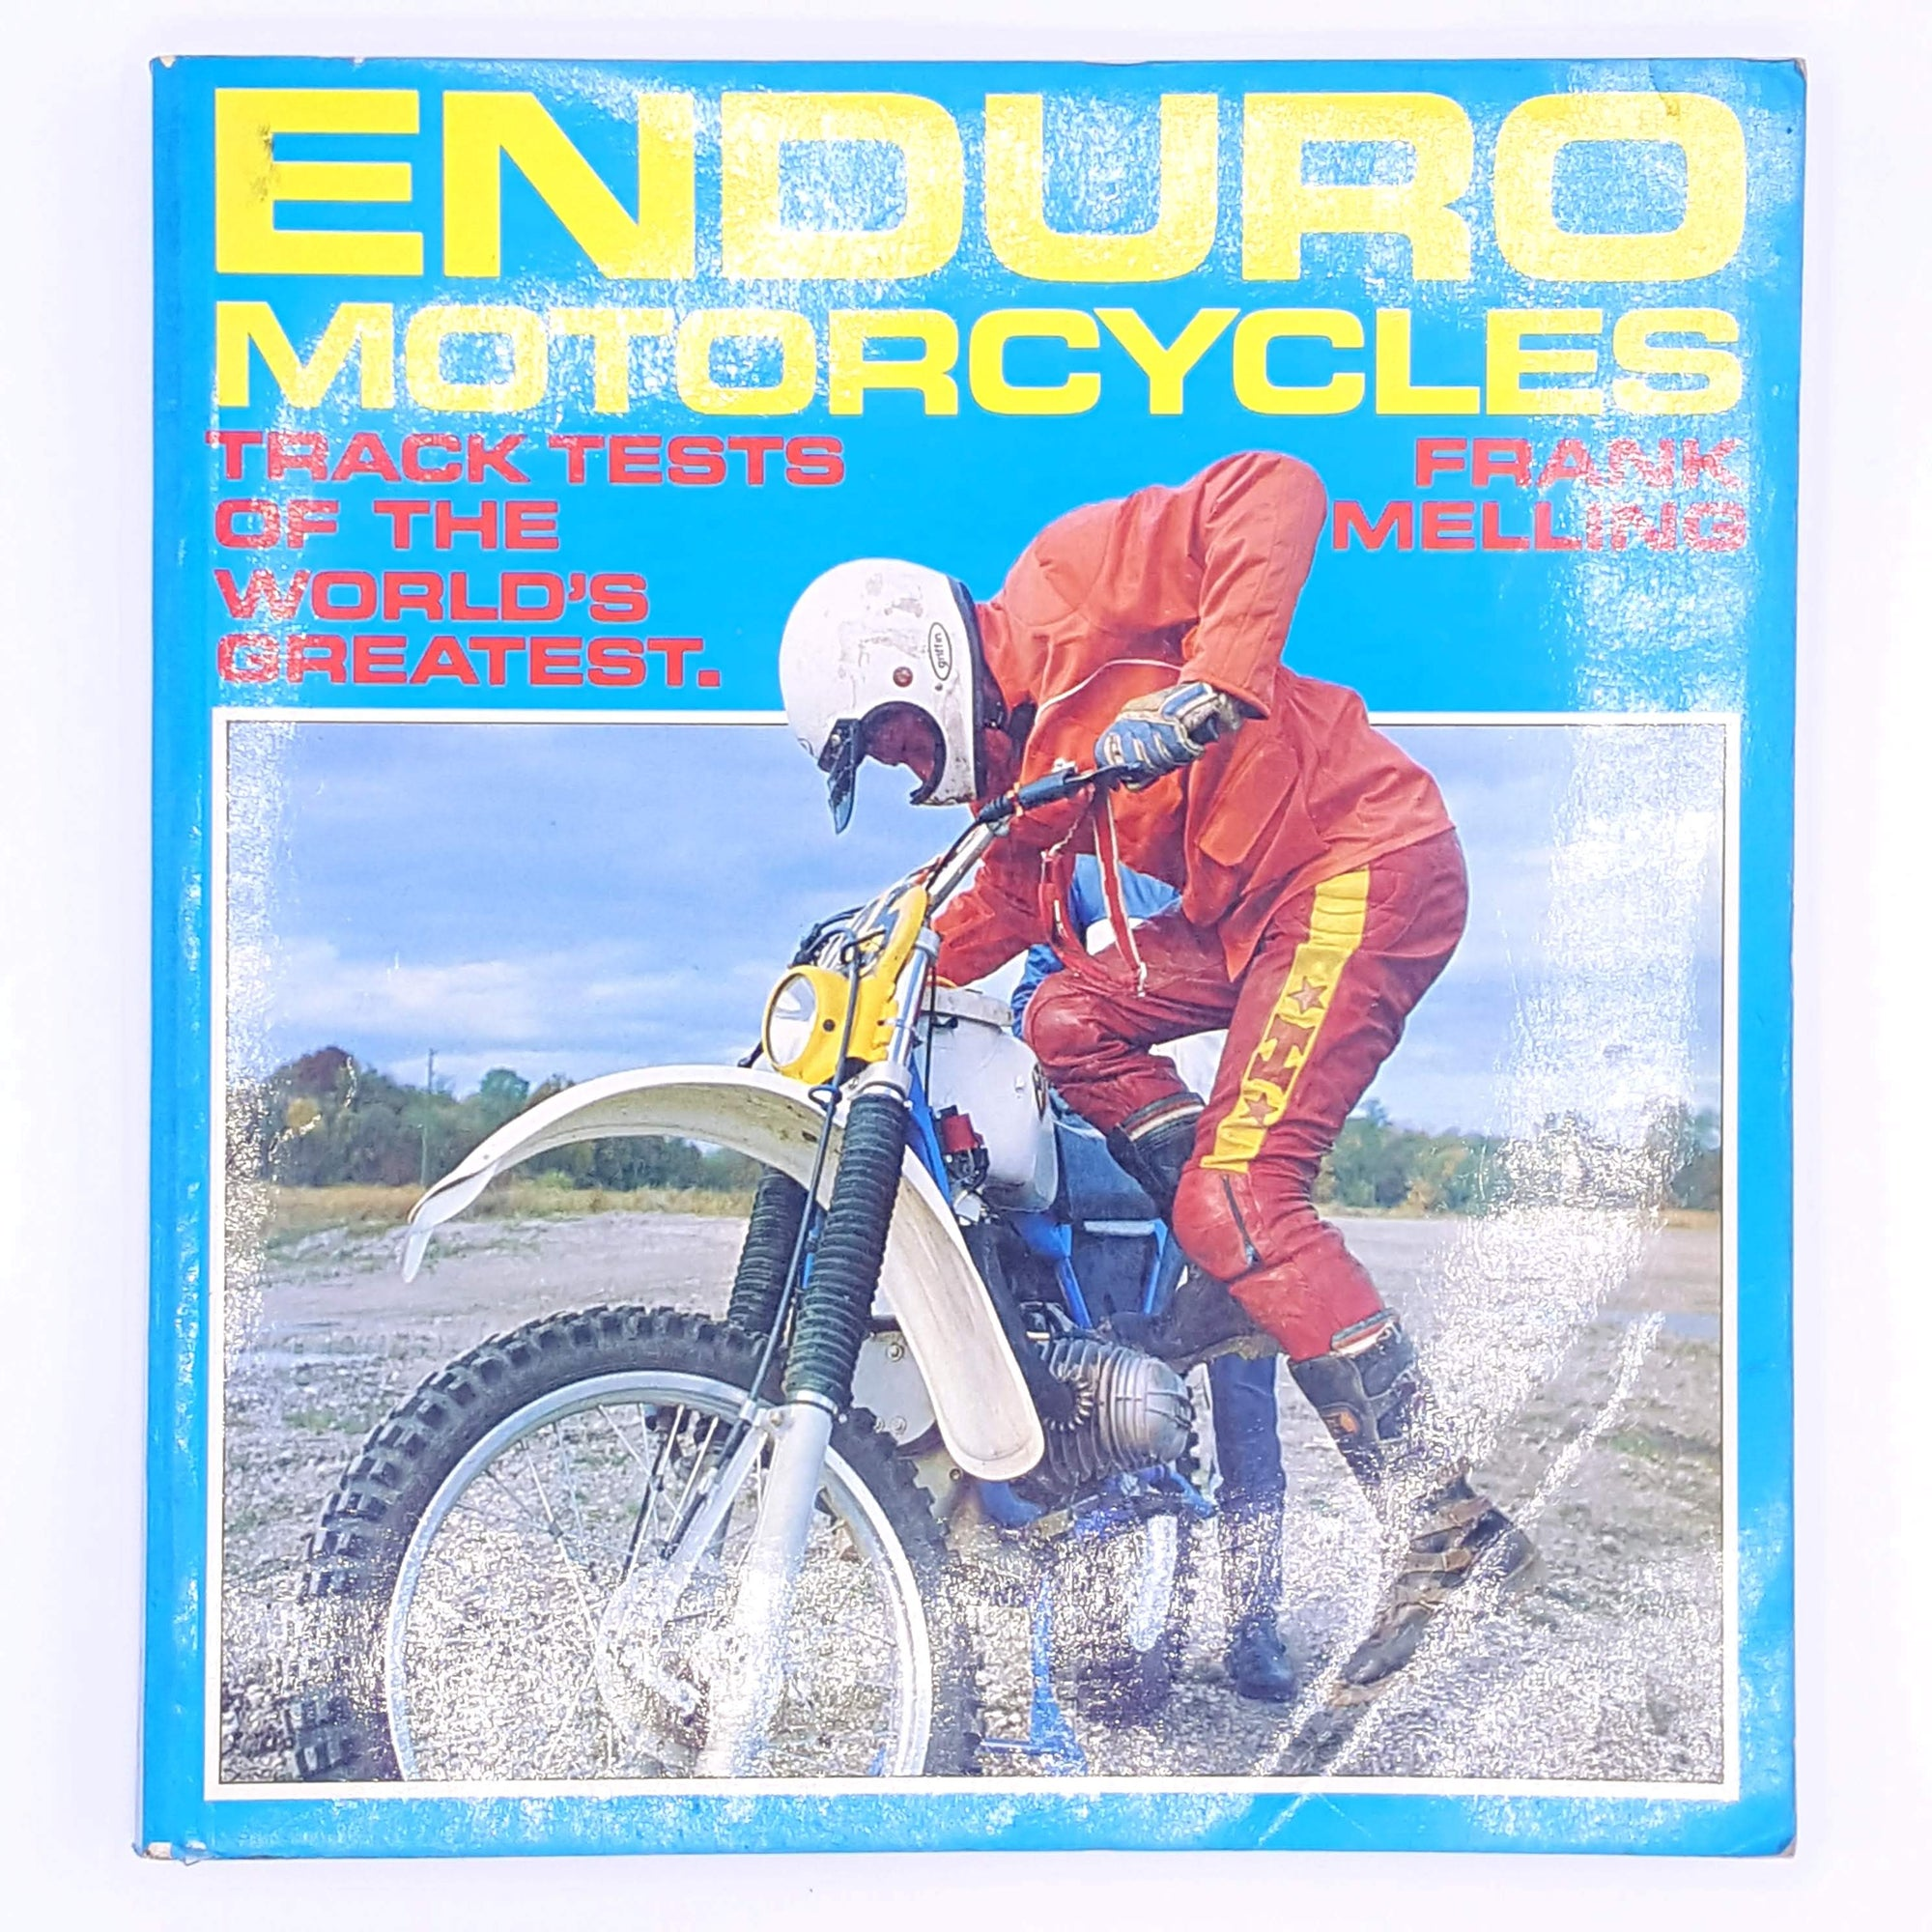 Enduro Motorcycles by Frank Melling, 1981